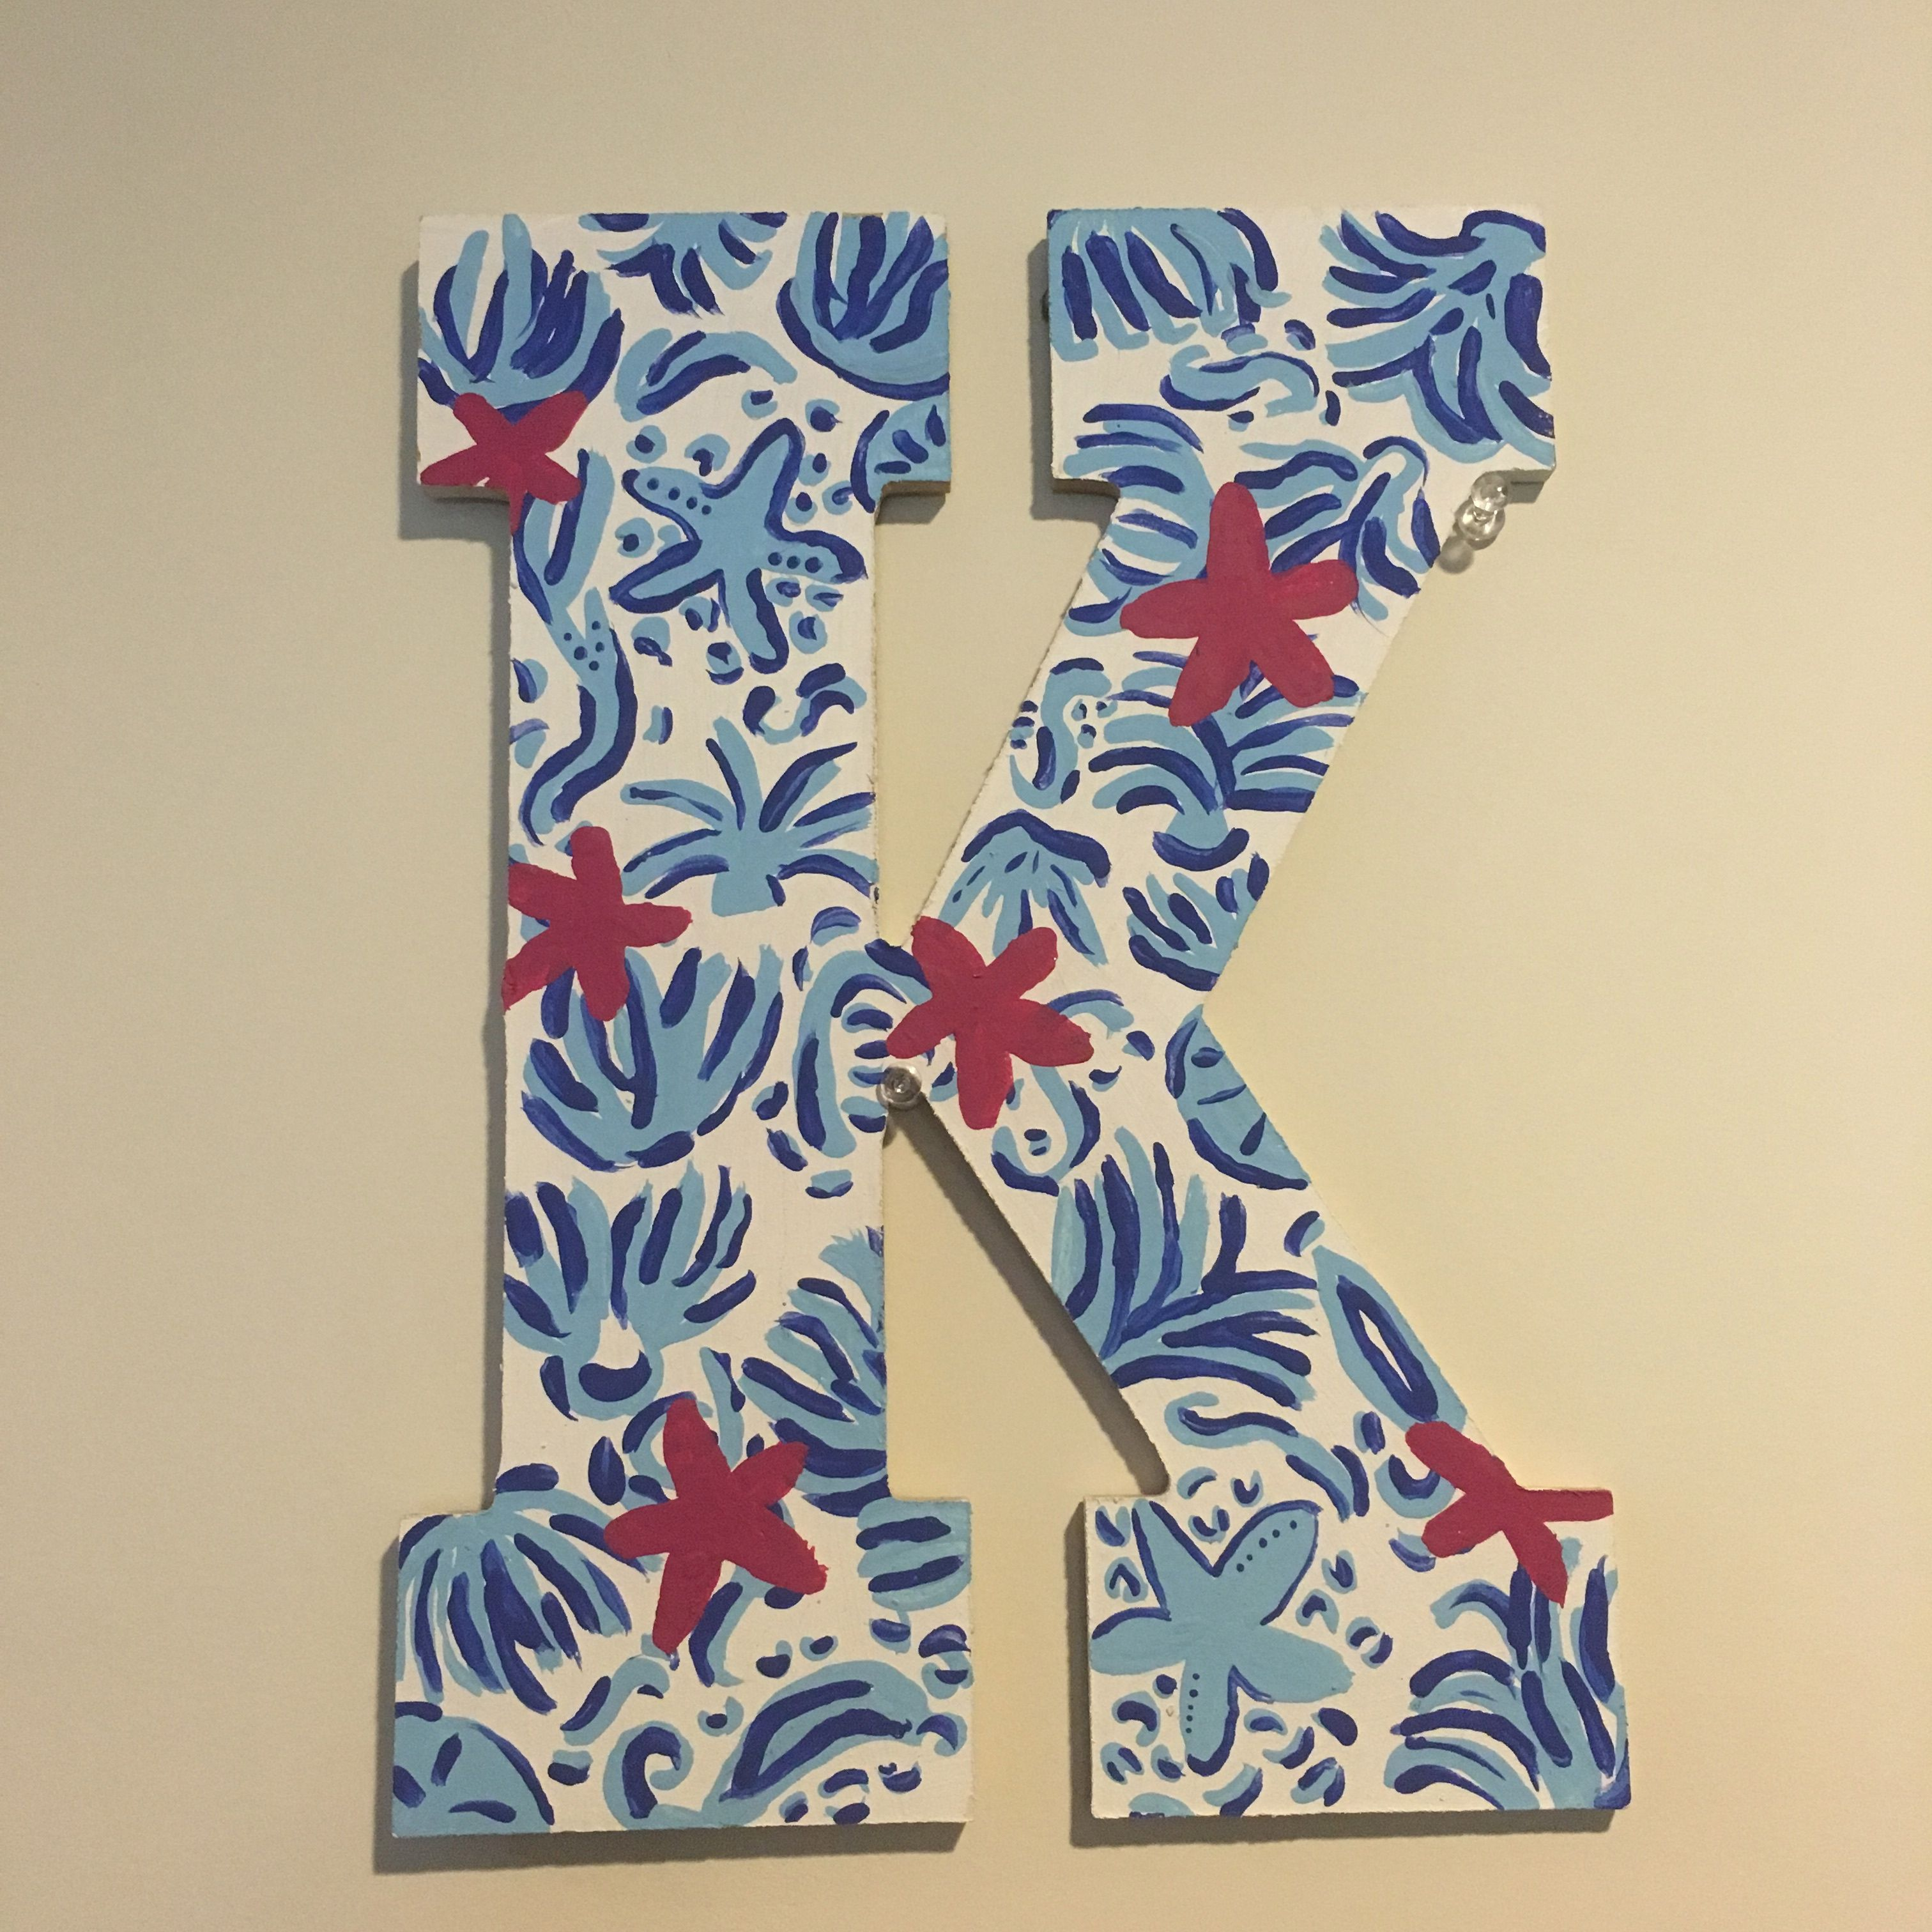 lilly pulitzer hand painted she she shells print k projects i lilly pulitzer hand painted she she shells print k